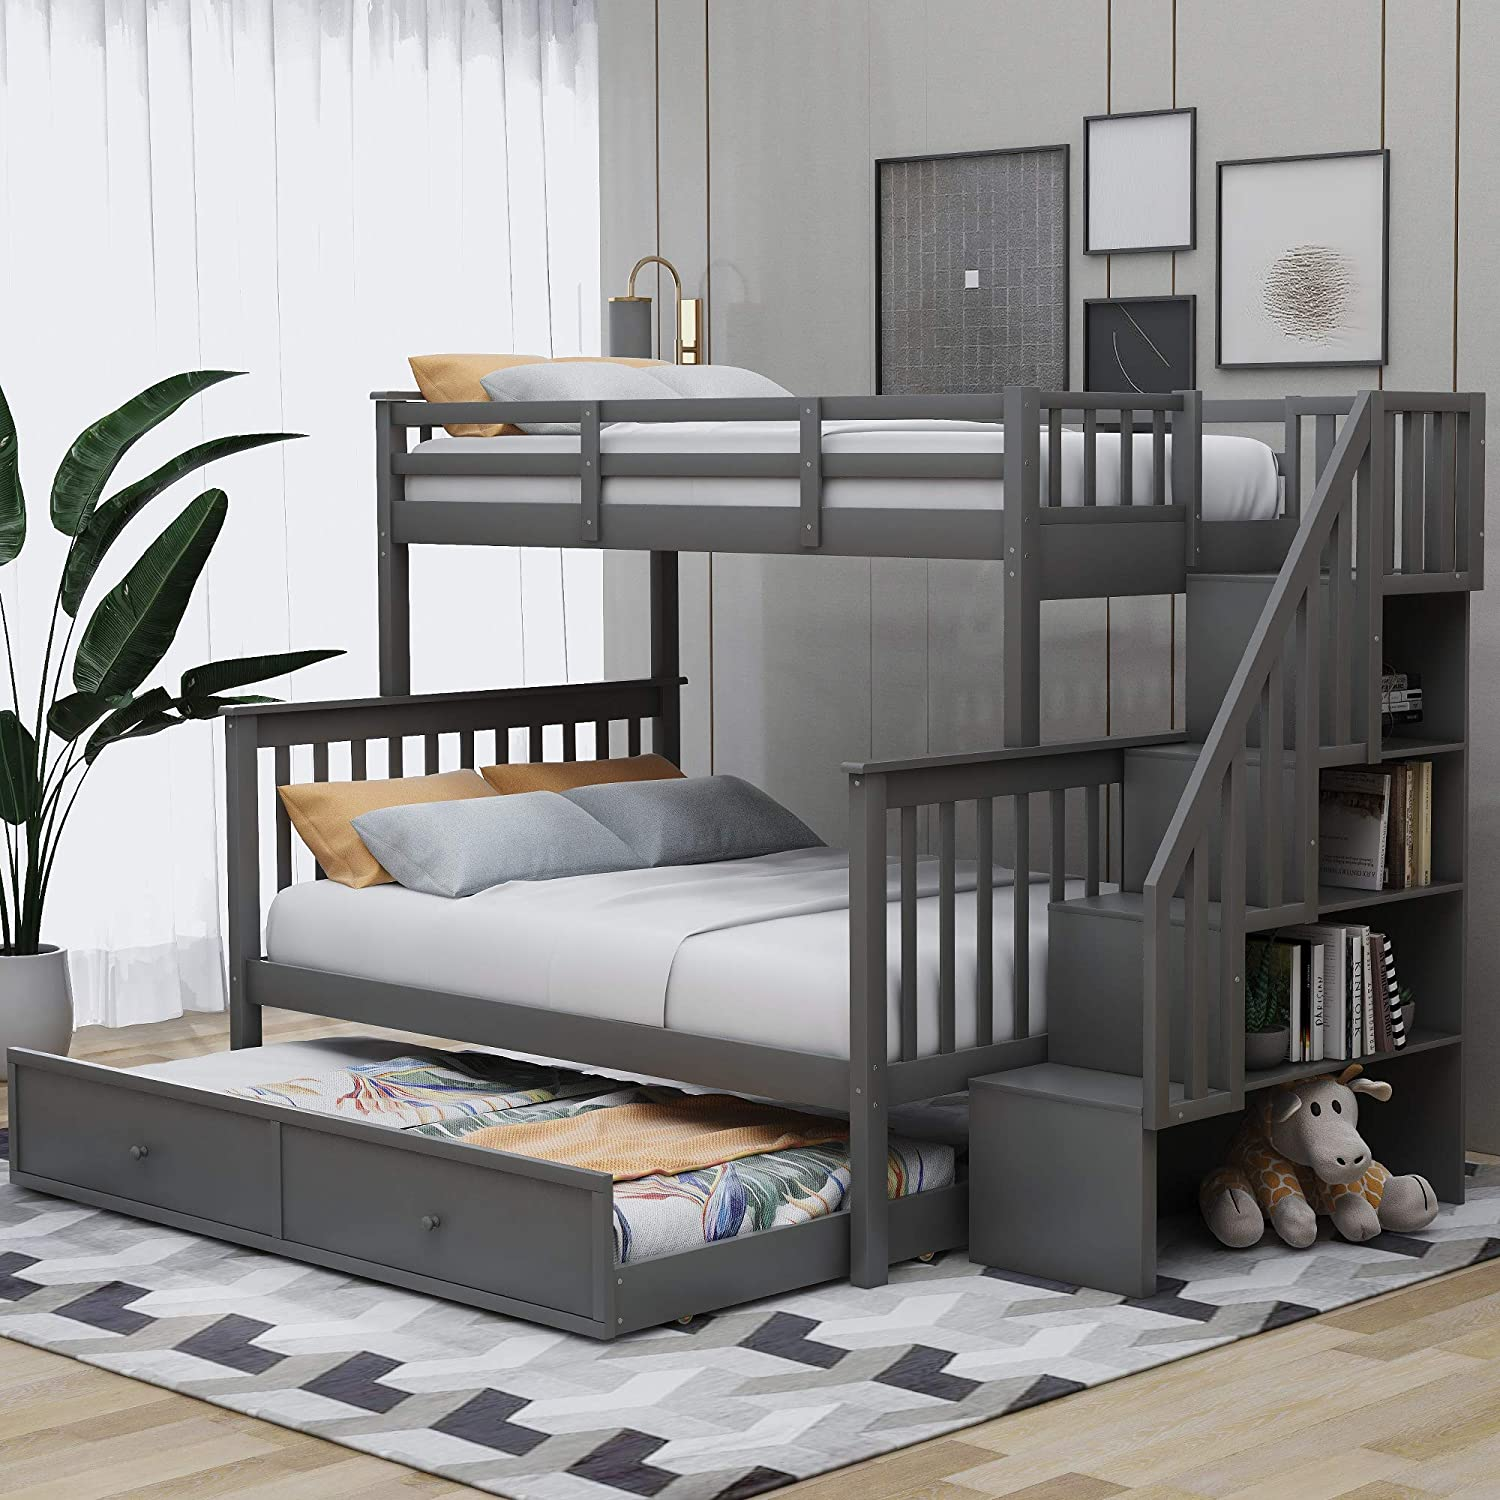 Amazon Com Merax Solid Wood Twin Over Full Stairway Bunk Bed With Twin Size Trundle Storage And Guard Rail For Kids Adults No Spring Box Needed Grey Kitchen Dining